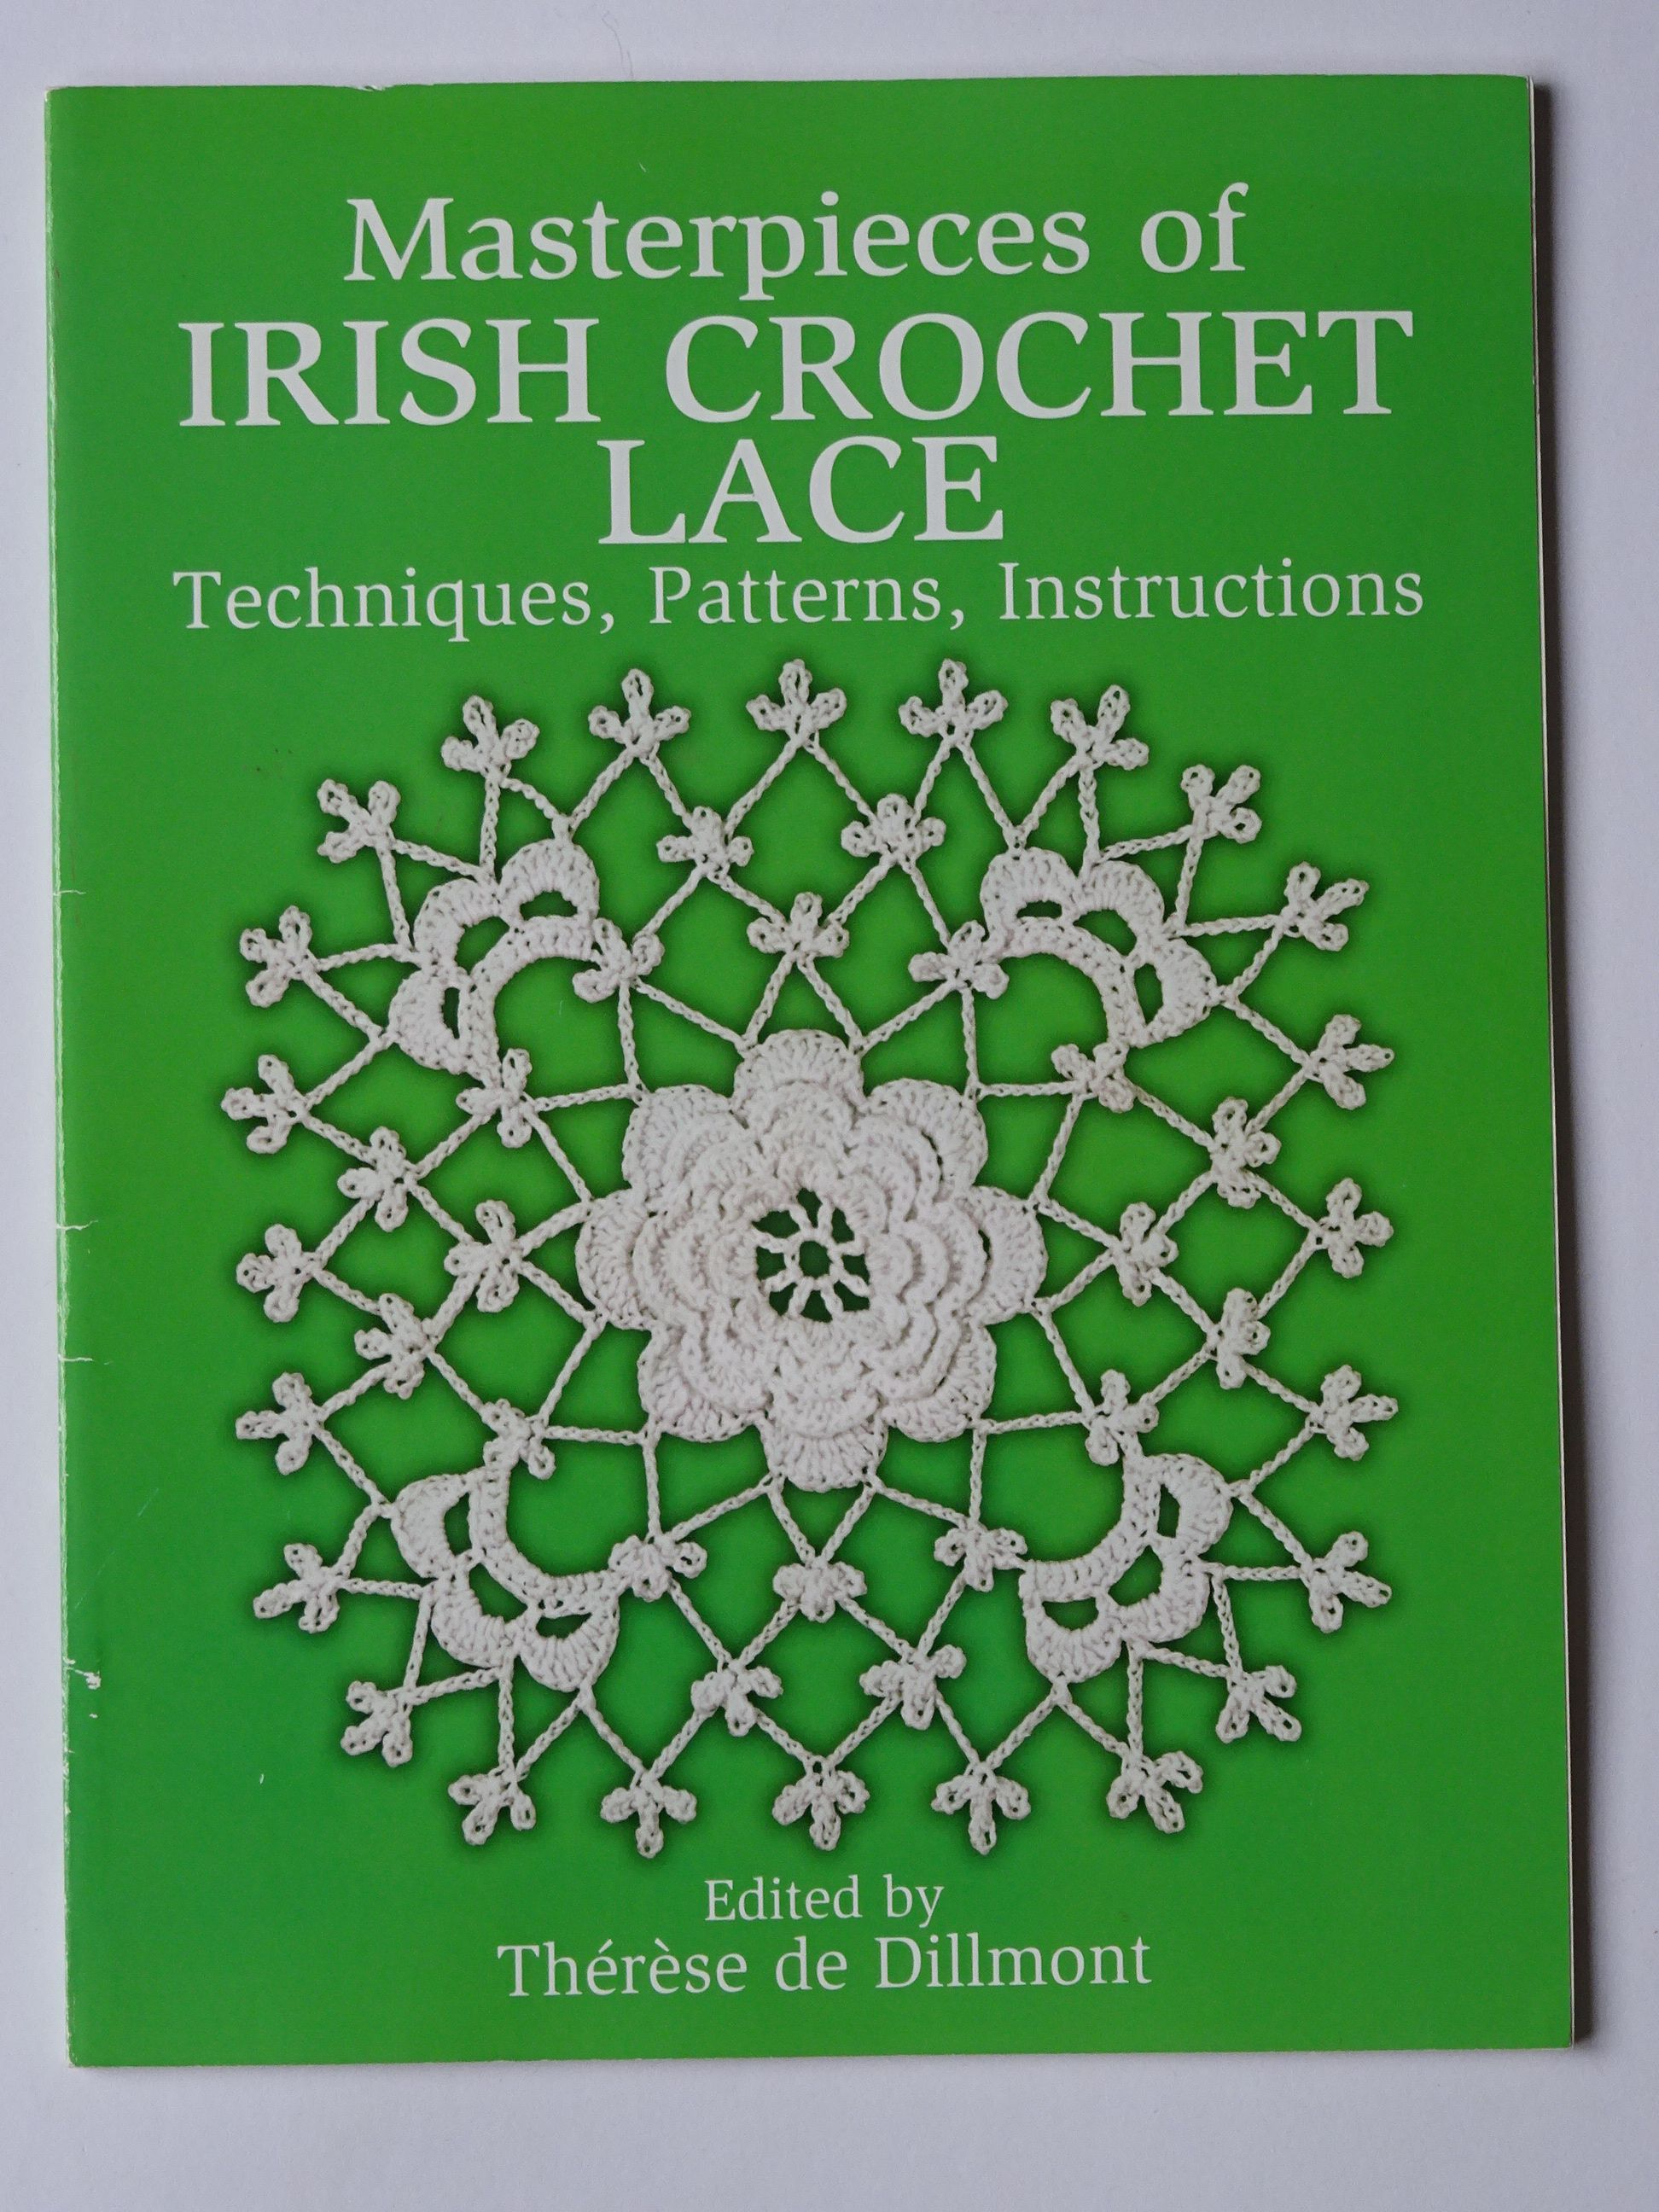 De  Dillmont, Thérèse -Masterpieces of Irish Crochet Lace. Techniques, Patterns, Instructions